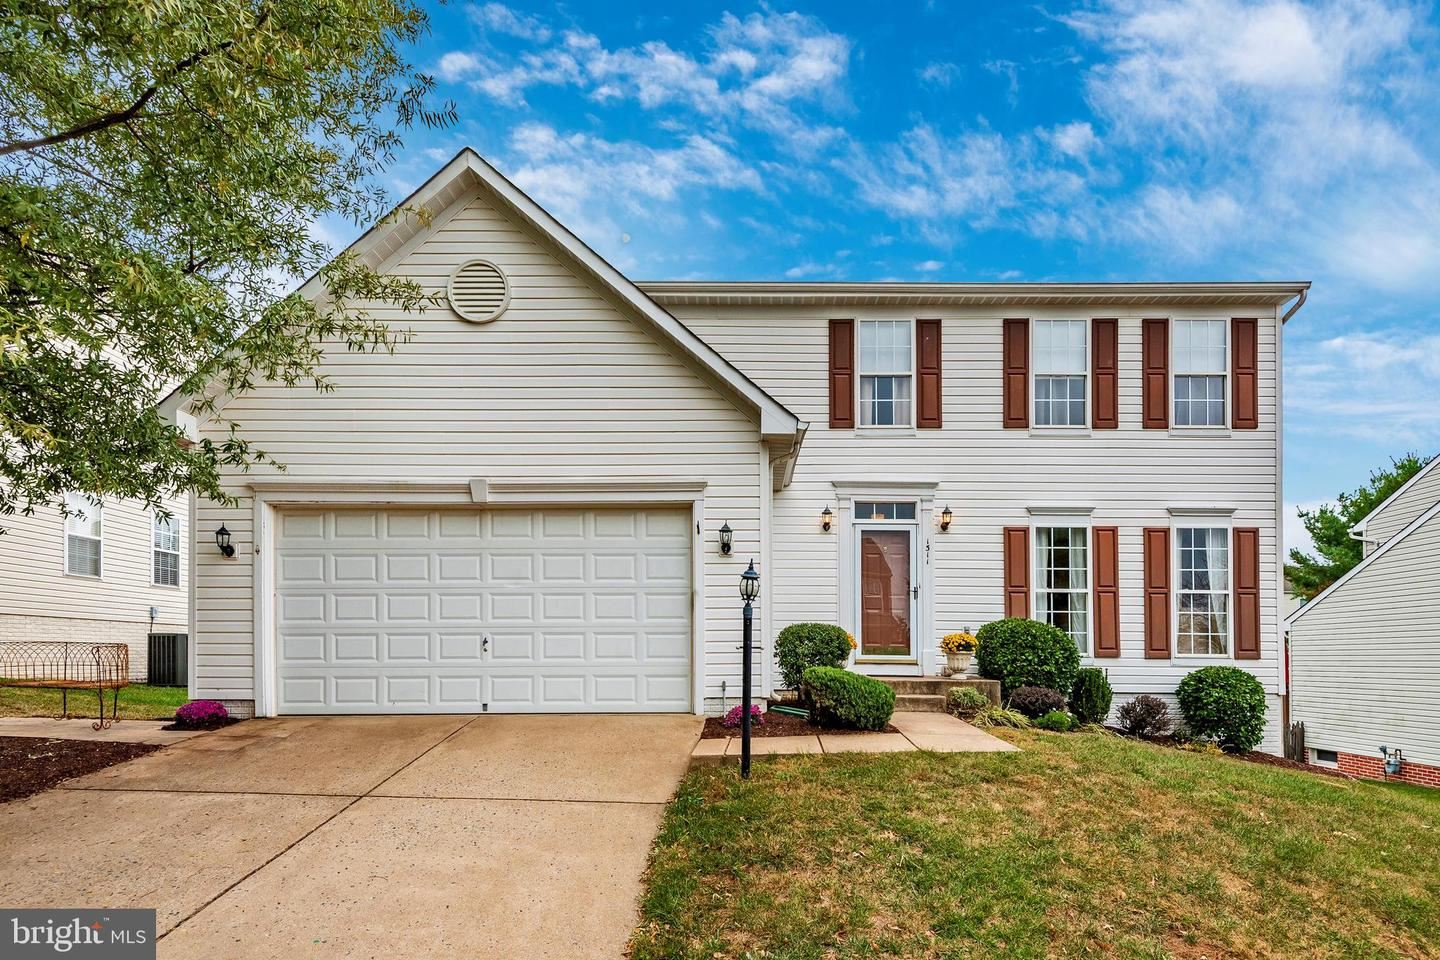 1311 CROSSBOW RD, Mount Airy, MD 21771 - MLS#: MDCR198182